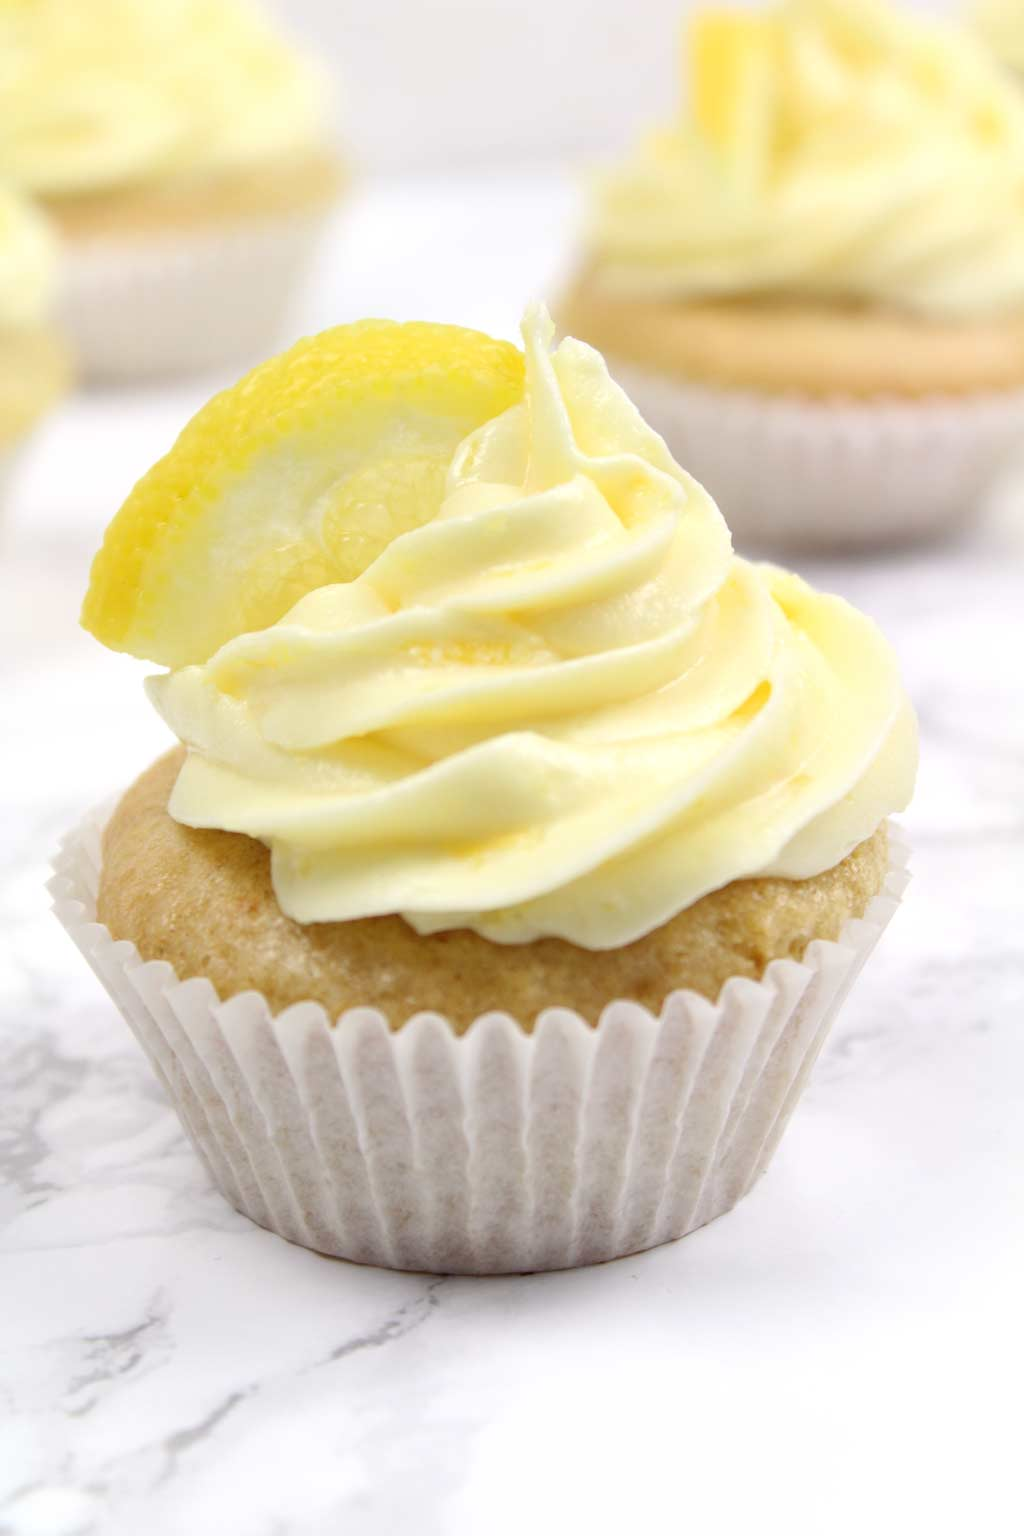 close up of a lemon cupcake with frosting on top